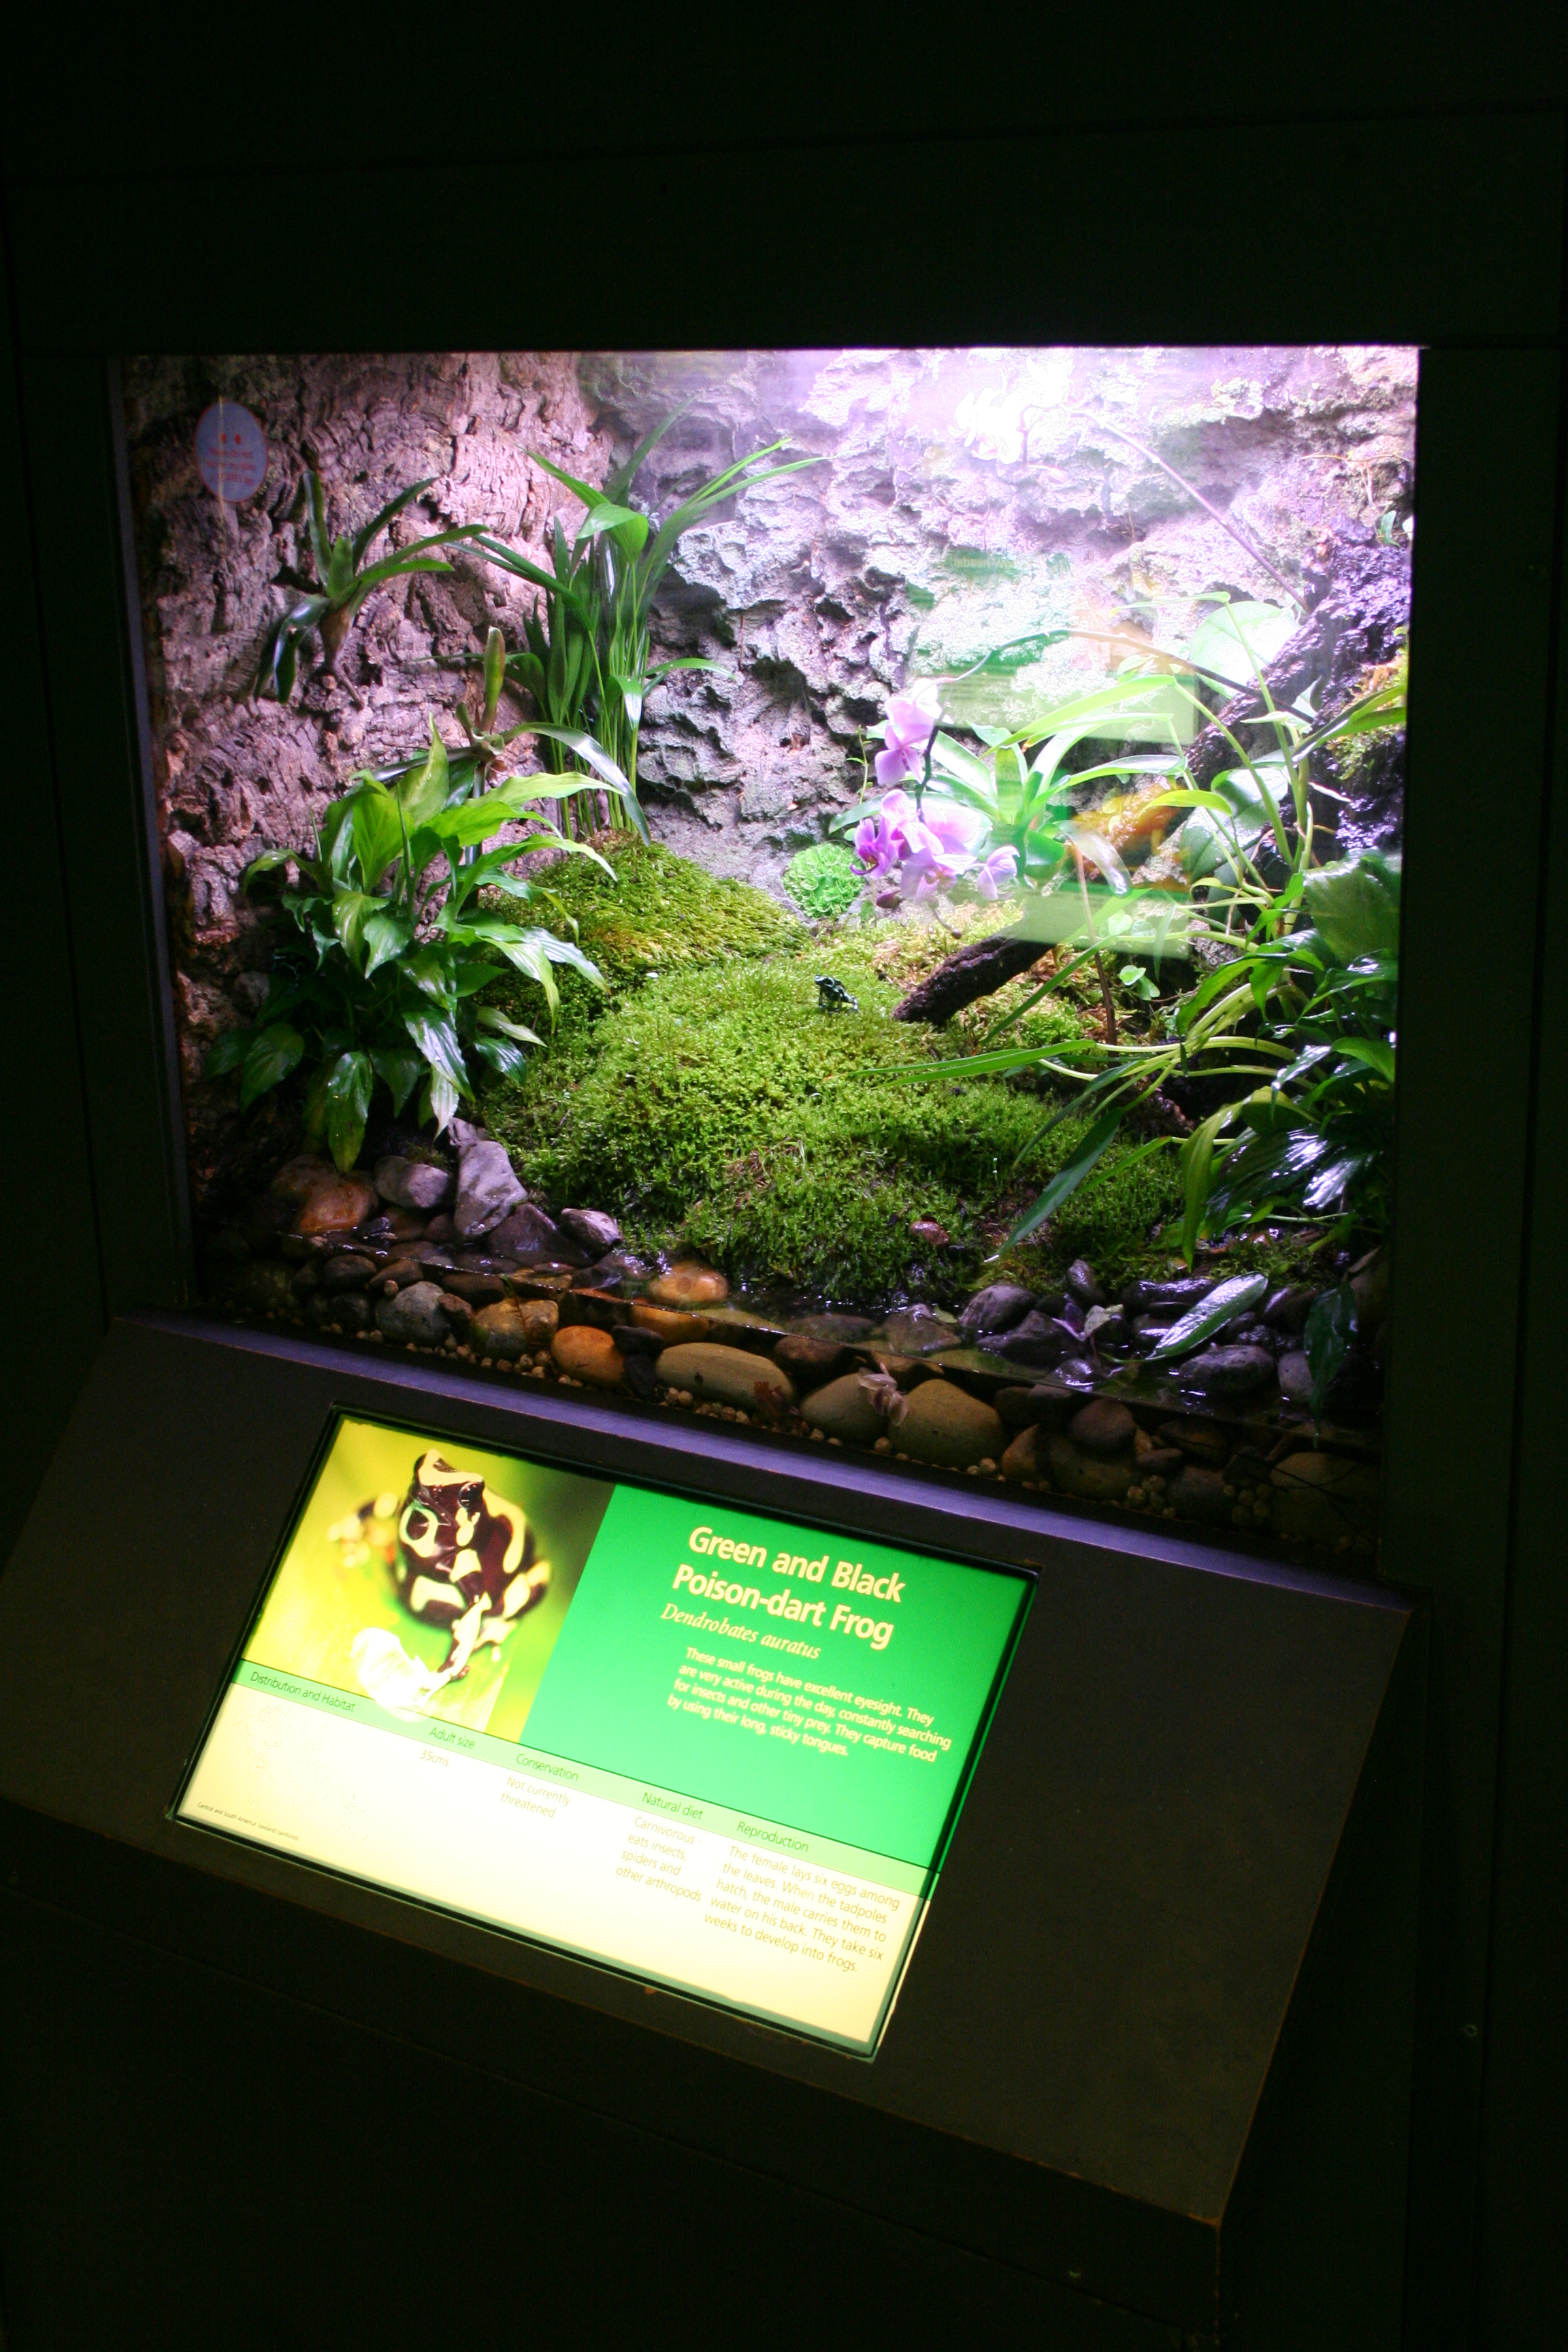 New Poison-dart Frog Exhibit! | FROG BLOG MANCHESTER